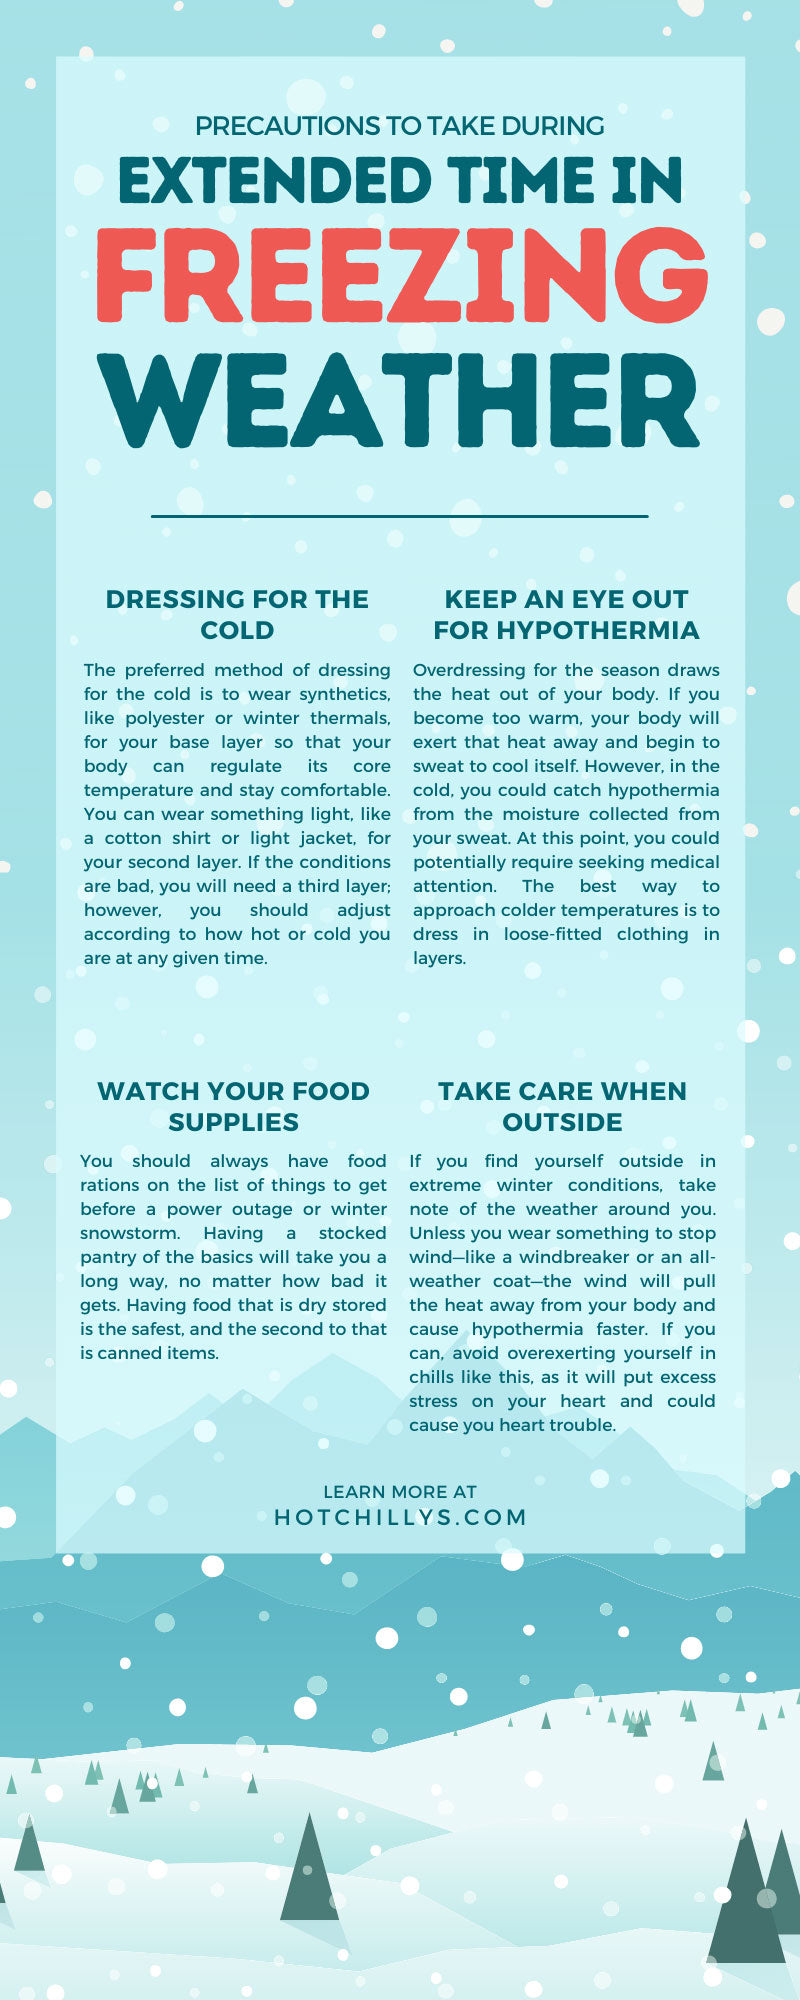 Precautions To Take During Extended Time in Freezing Weather